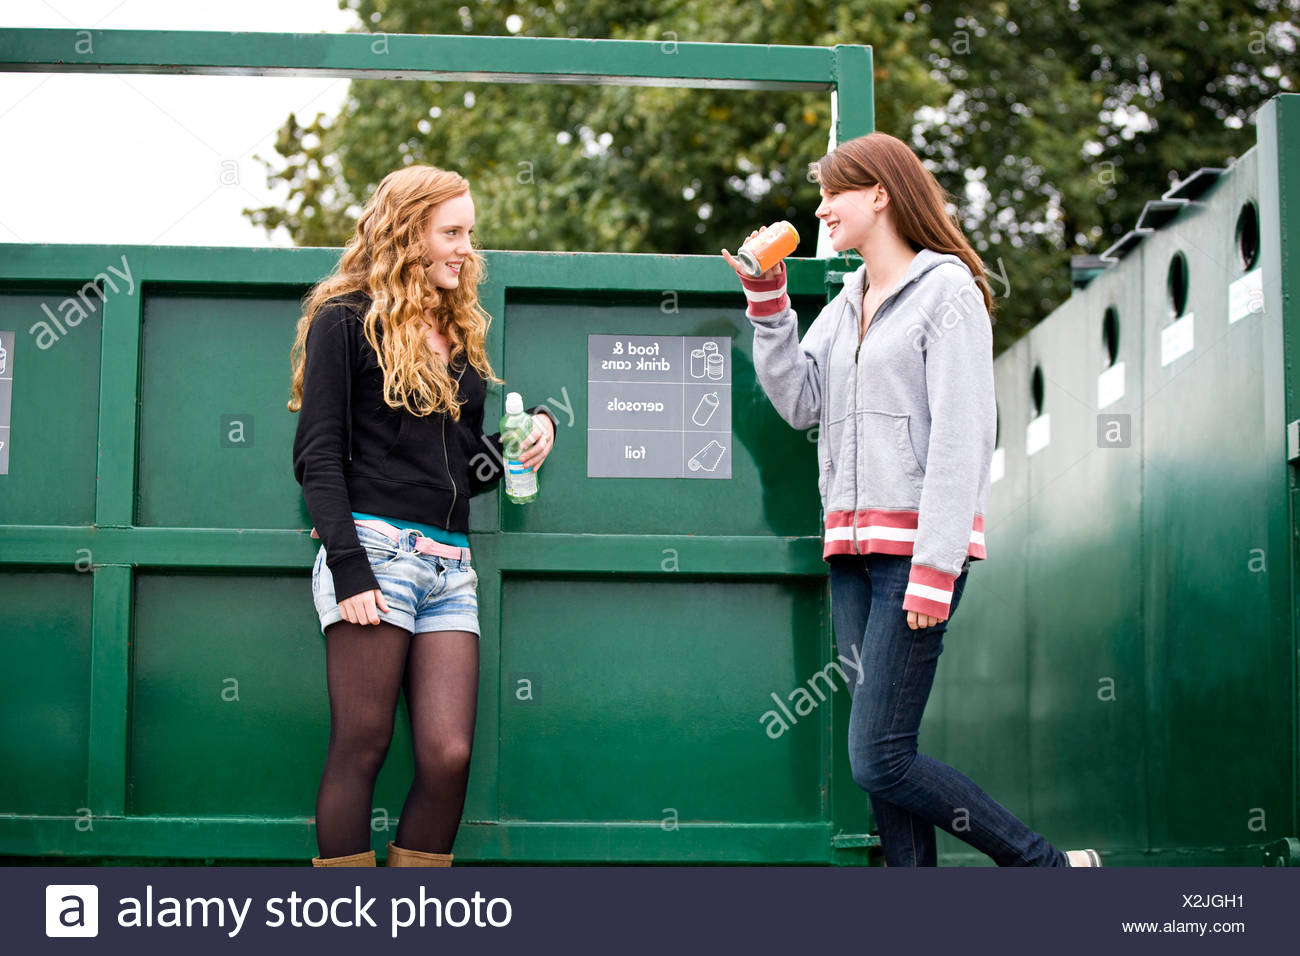 Two teenage girls standing next to a recycling container, drinking soft drinks - Stock Image